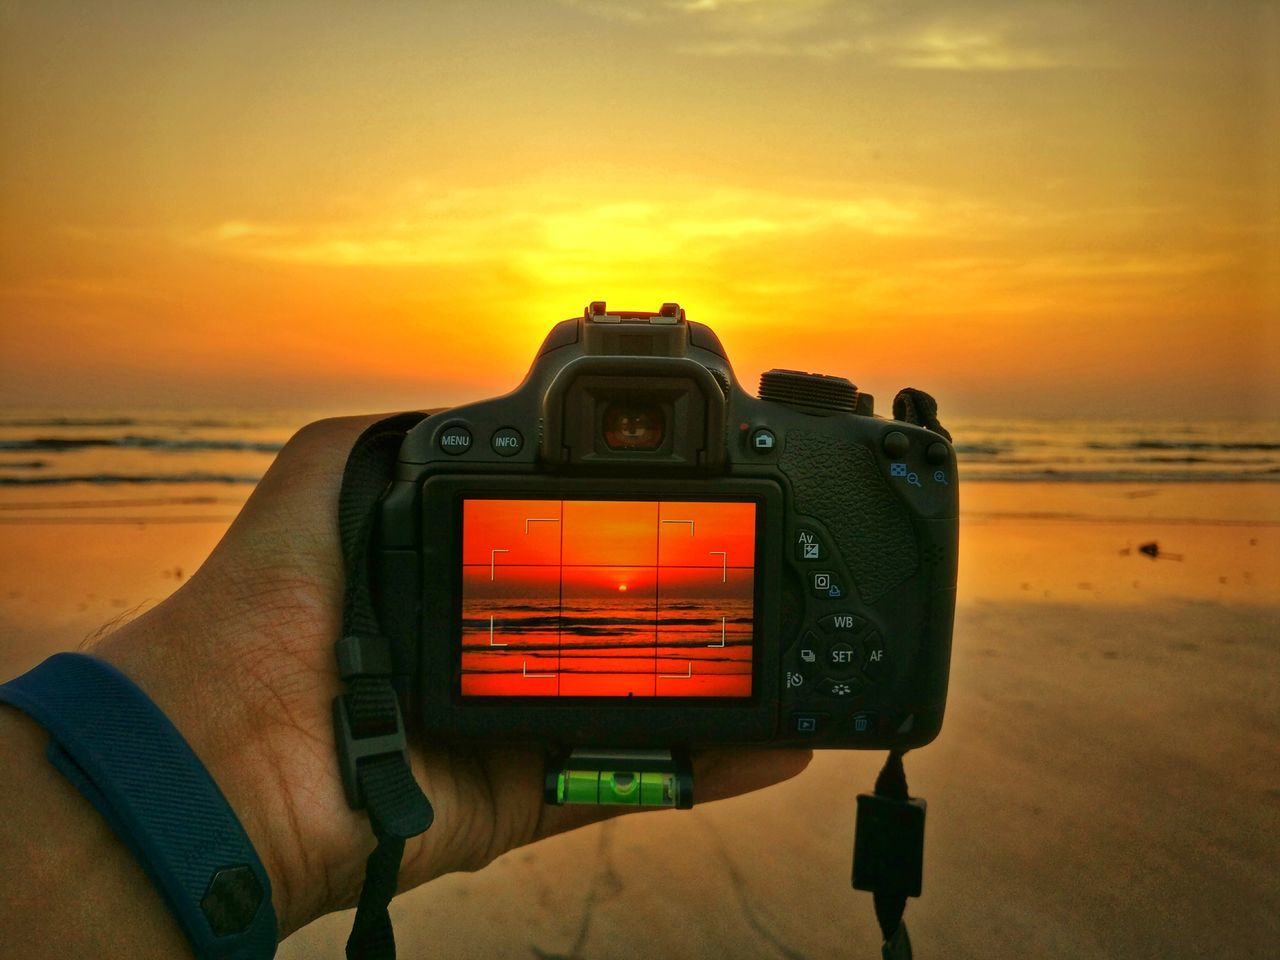 CLICK IT📸 Photography Themes Sunset Photographing Sea Sky One Man Only Photographer Beach Sand Vacations Landscape Amazing_captures Cyclephotography Cyclists Summertime Photography Getty Images Copyright Mumbai India City Nature Beauty In Nature Silhouette The Great Outdoors - 2017 EyeEm Awards The Architect - 2017 EyeEm Awards The Street Photographer - 2017 EyeEm Awards EyeEmNewHere